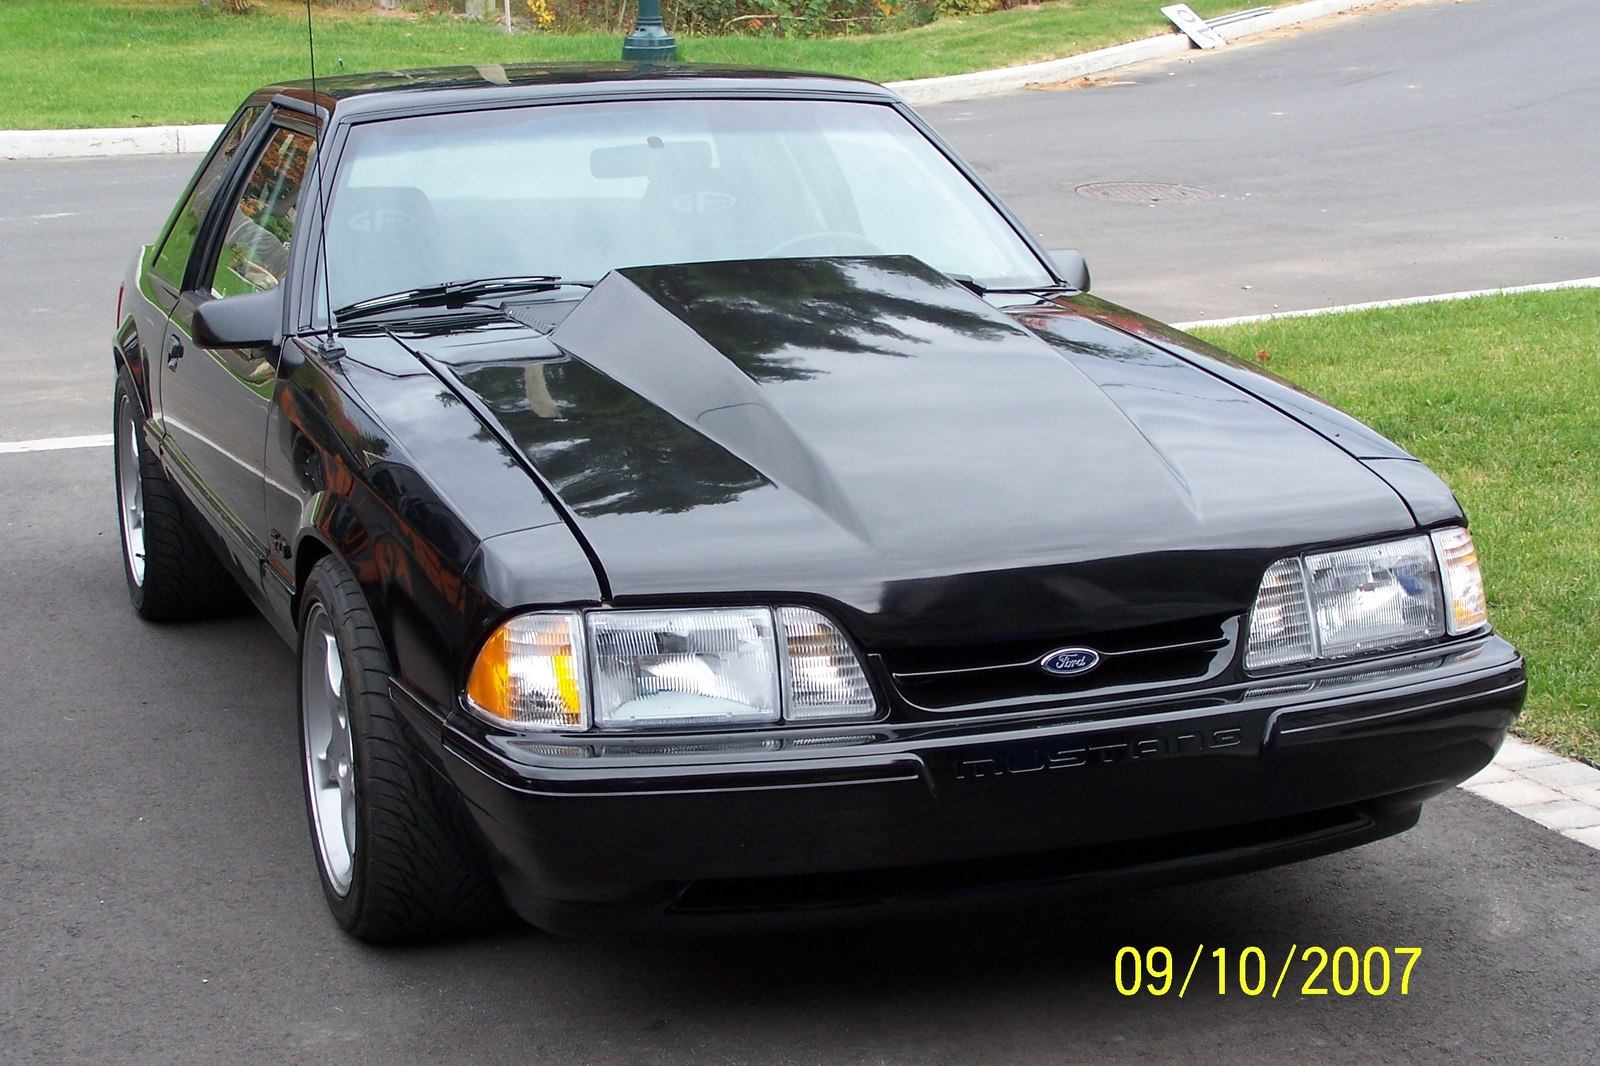 Ford Mustang Dr Lx Coupe Pic on 1994 F 150 Specs 5 0